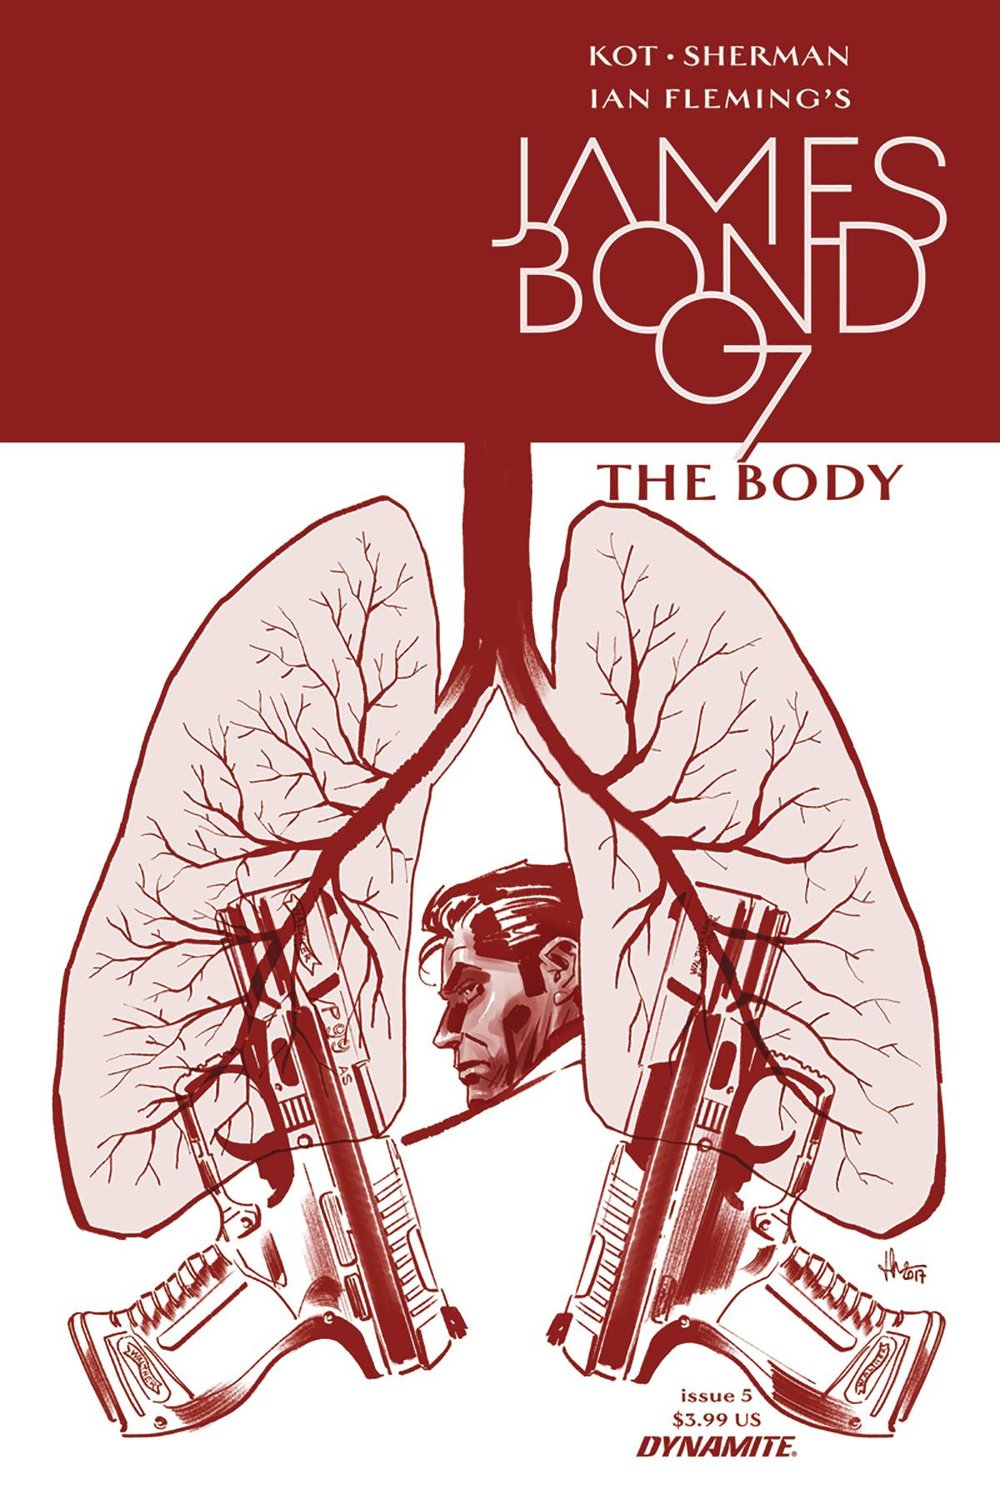 JAMES BOND THE BODY 5 of 6 CVR A CASALANGUIDA.jpg